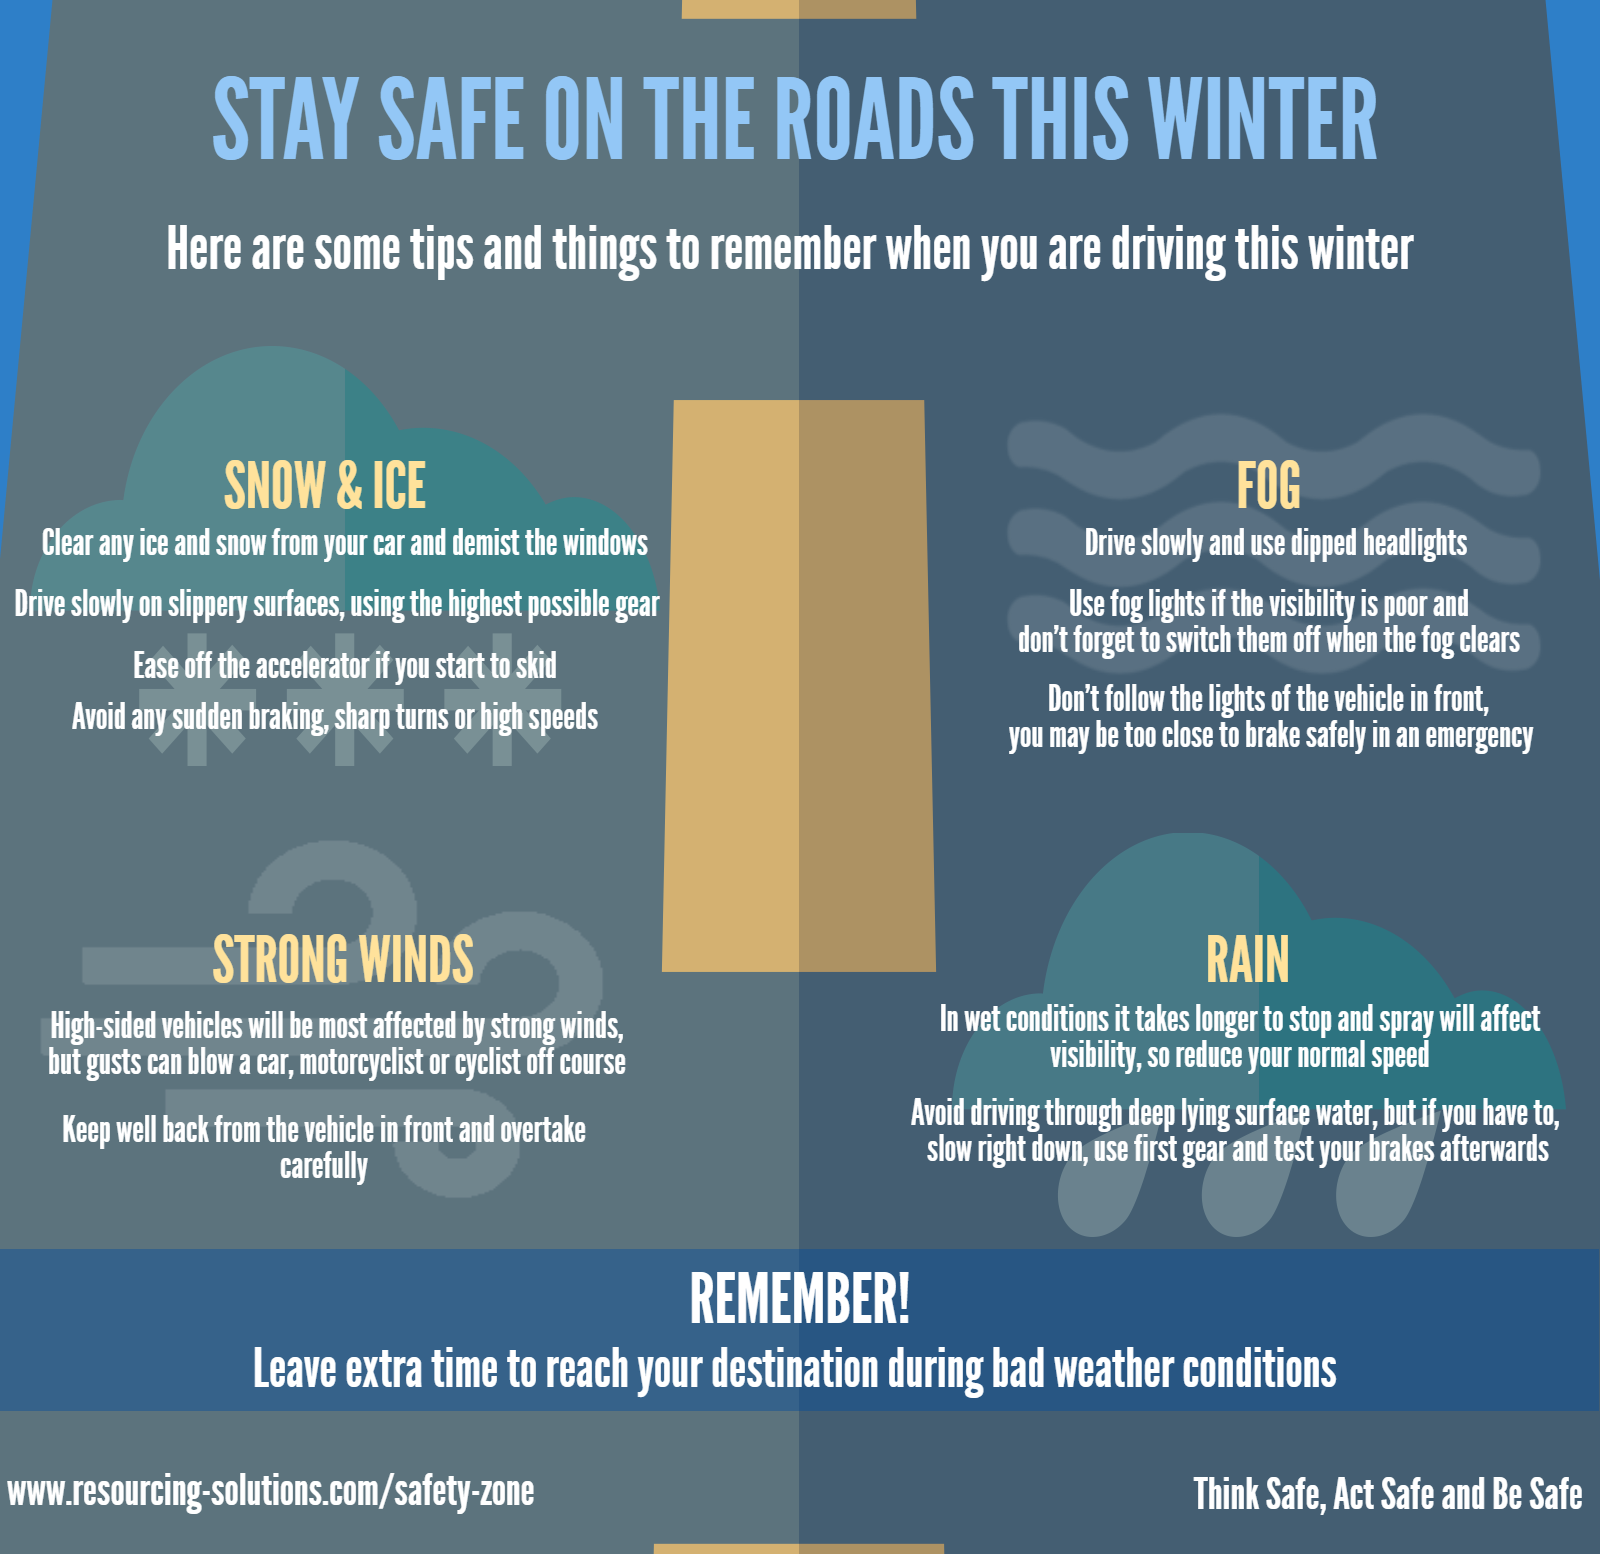 Stay safe on the roads this winter